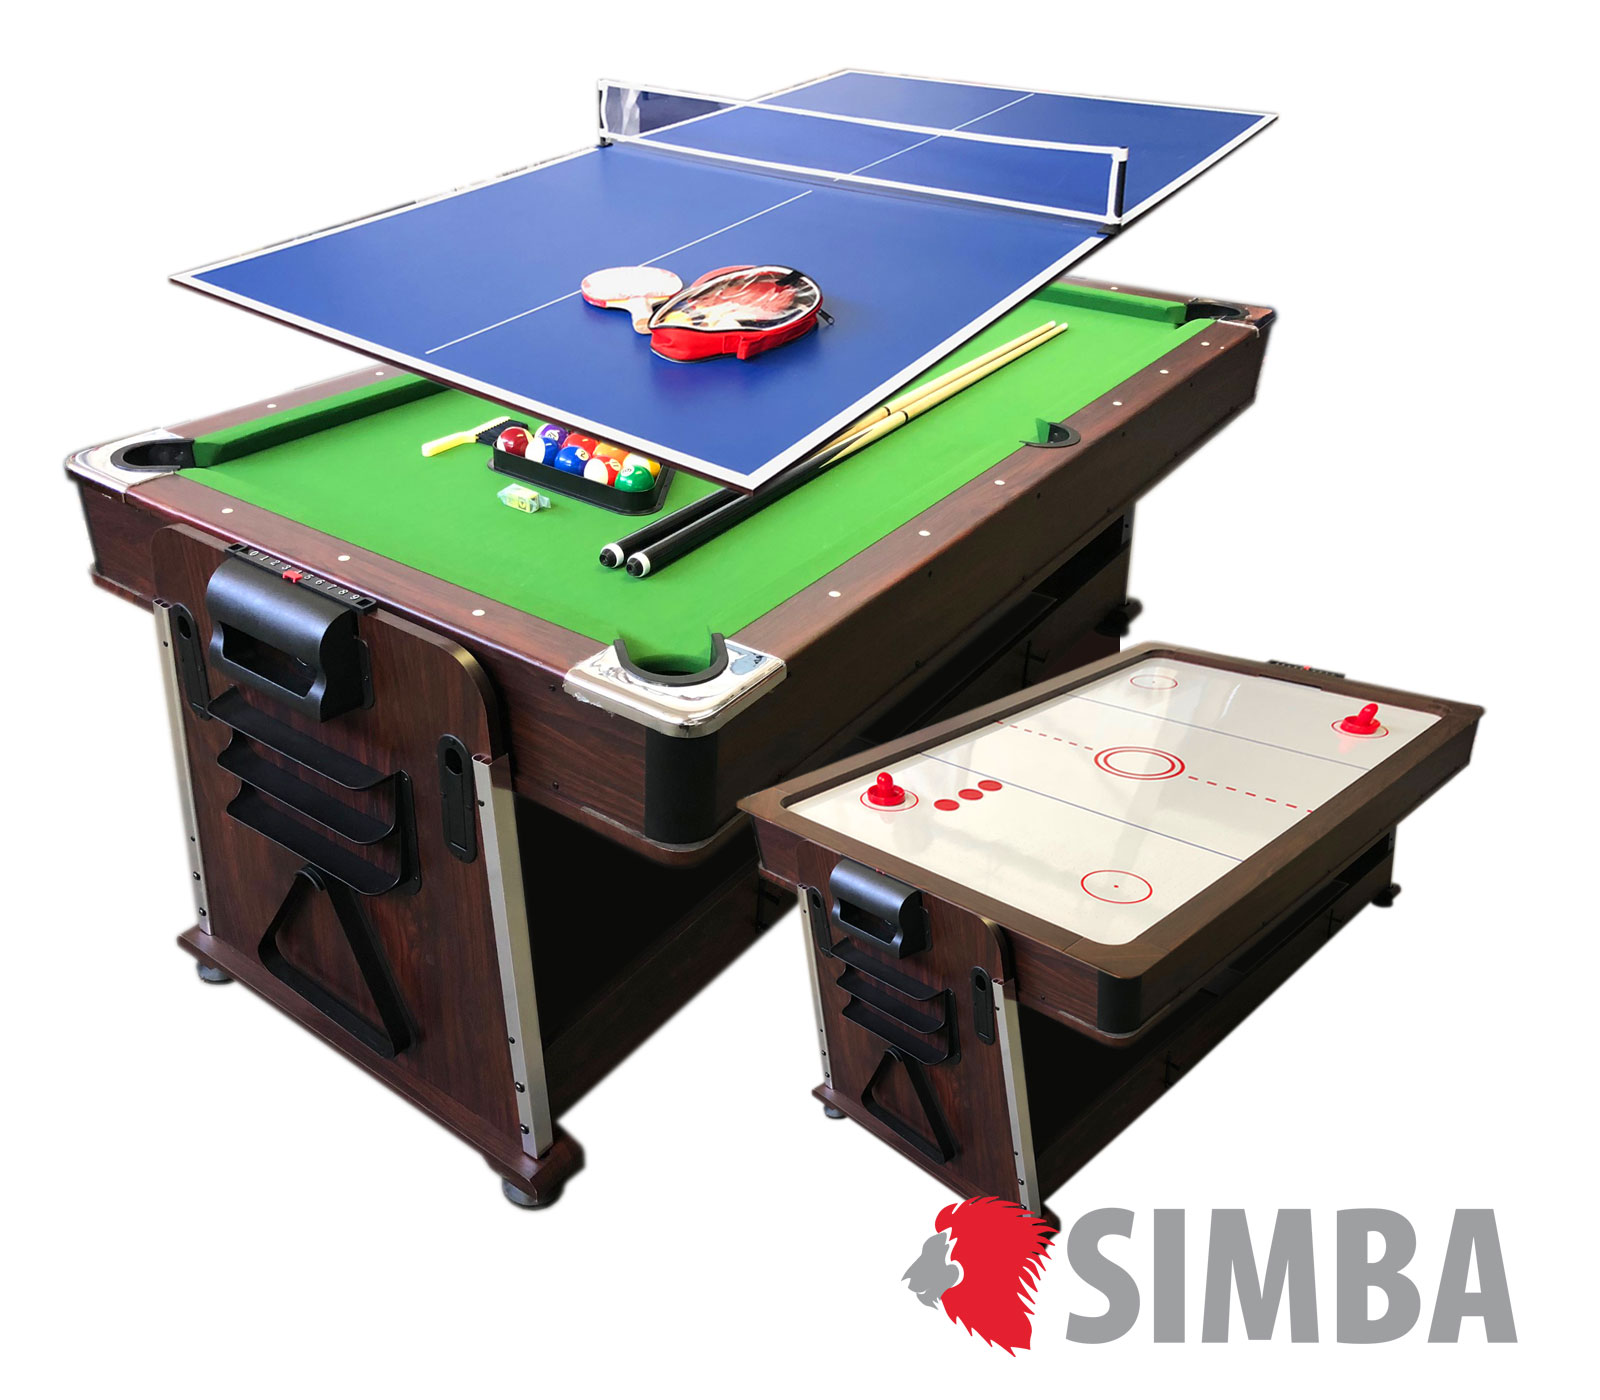 Details about 7Ft Green Pool Table Billiard + Air Hockey + Tennis Table + Cover plan for table  sc 1 st  eBay & 7Ft Green Pool Table Billiard + Air Hockey + Tennis Table + ...